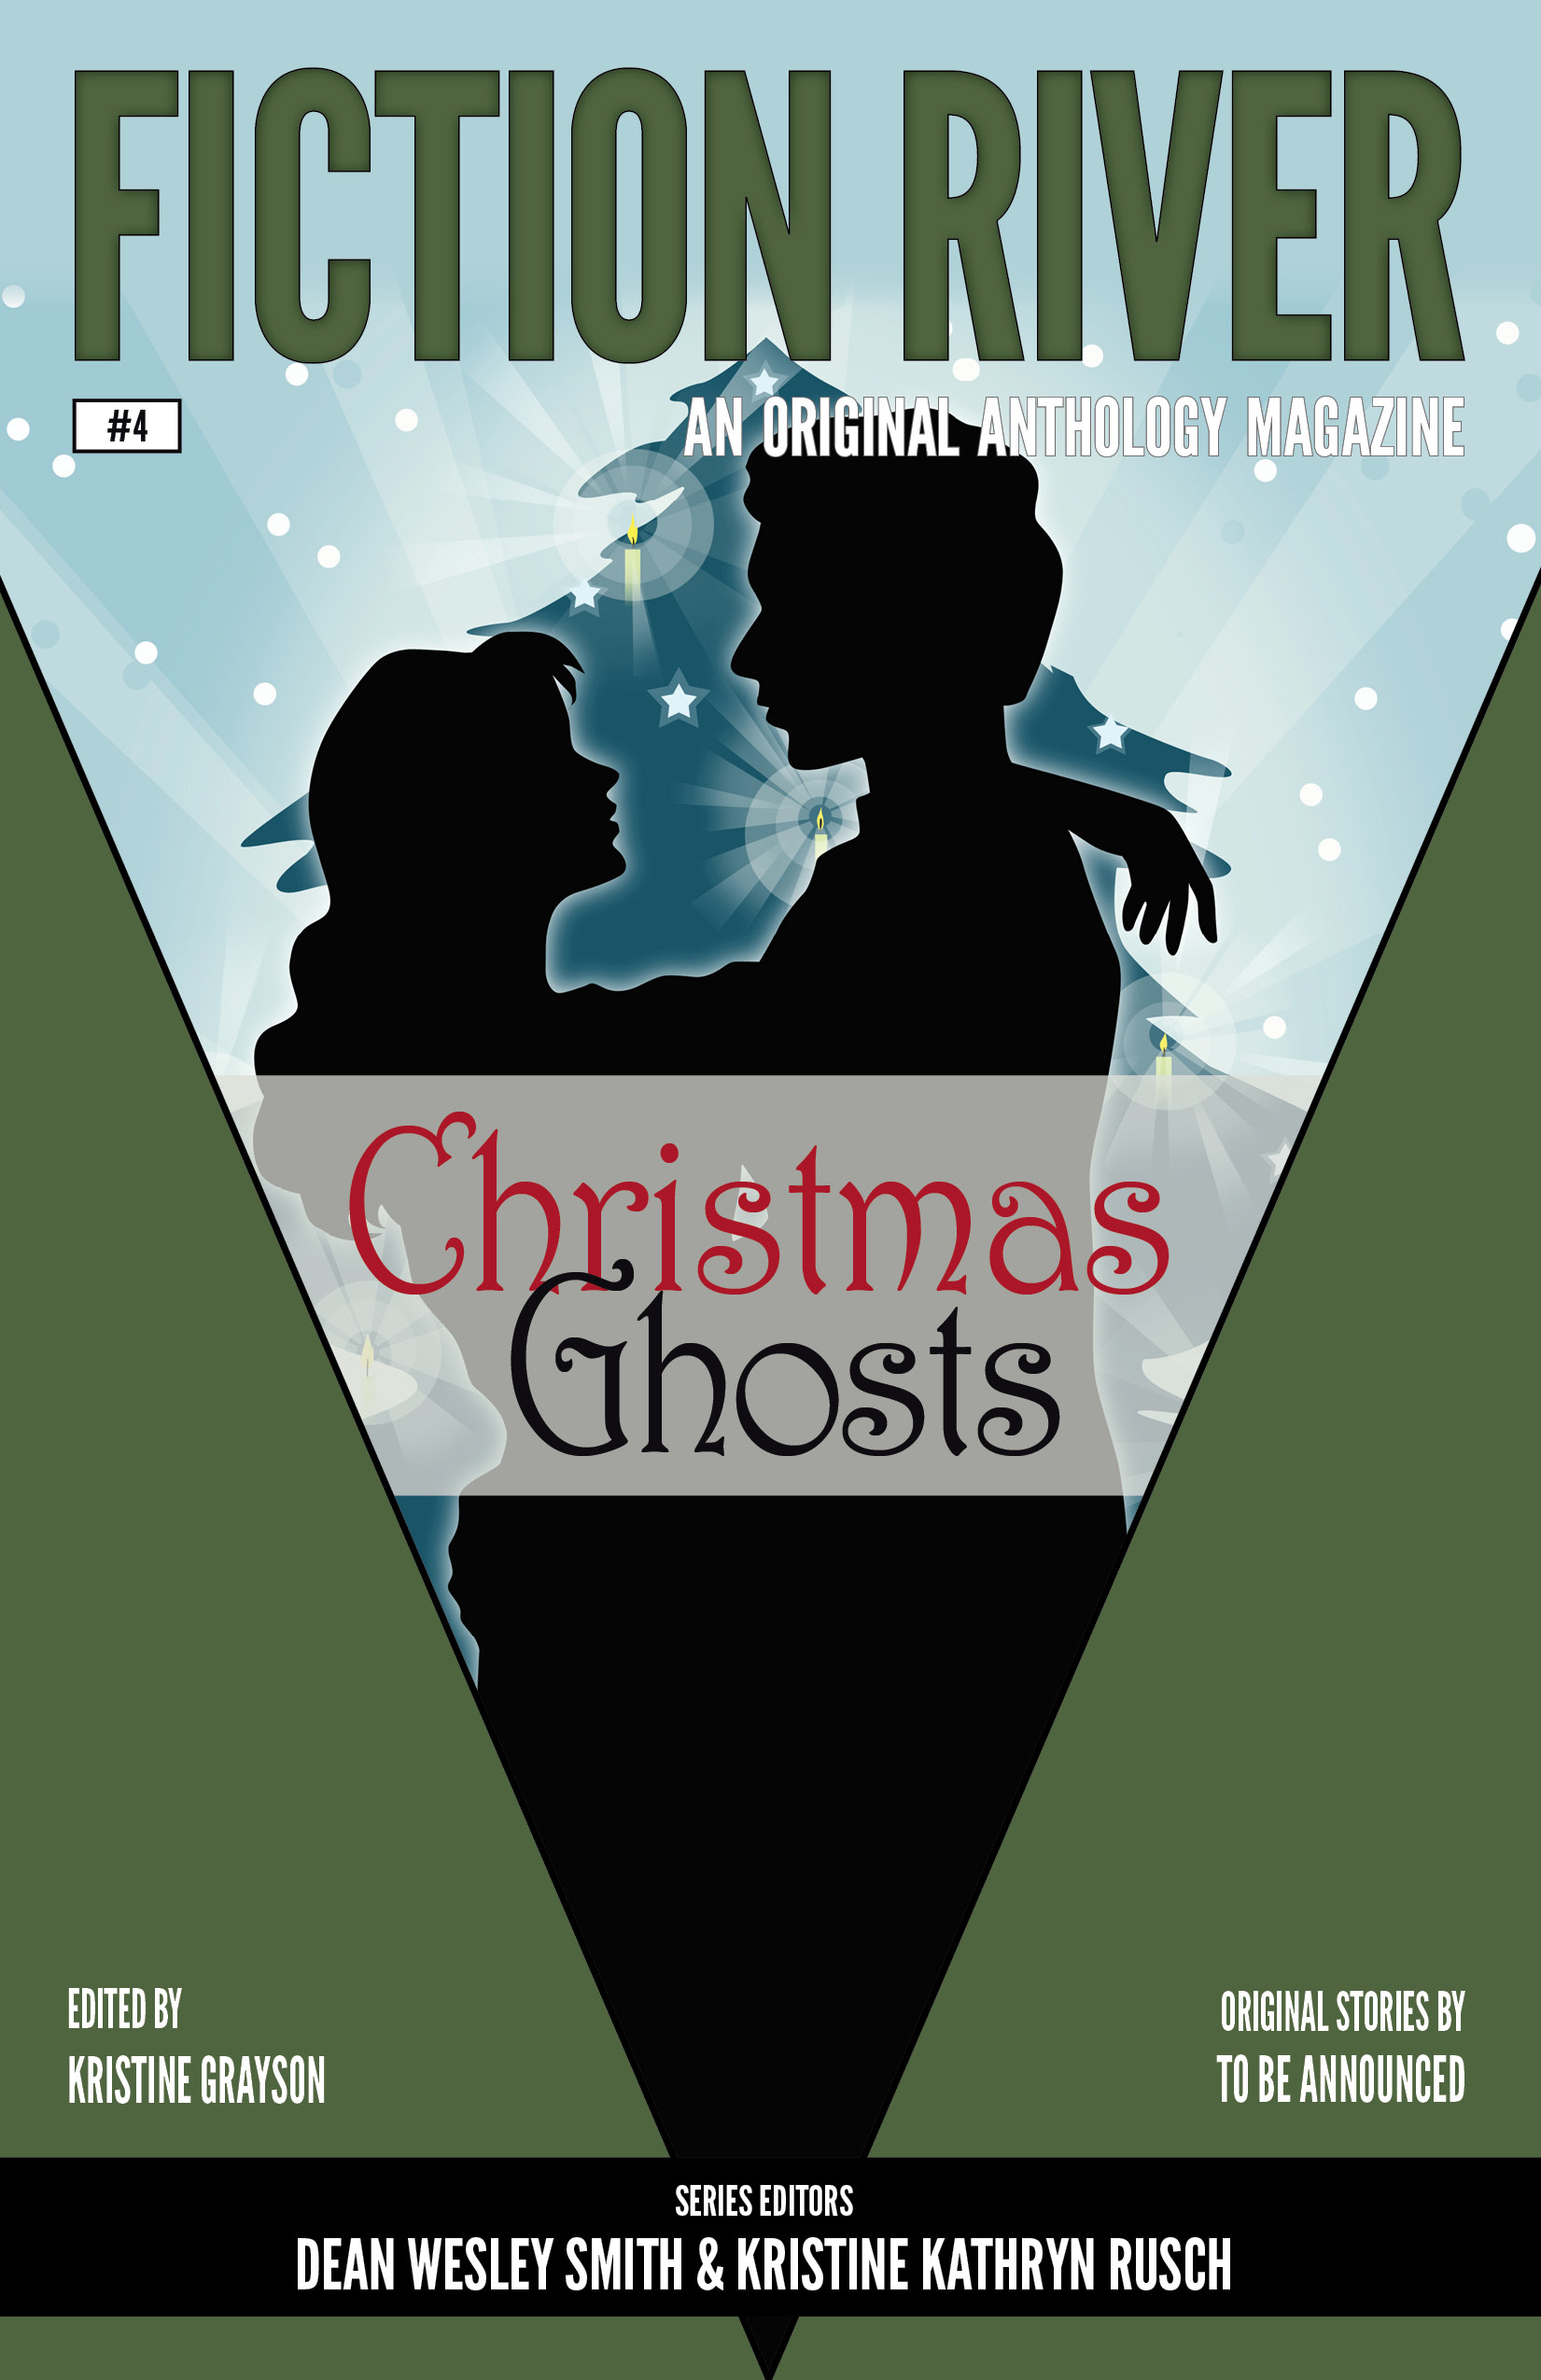 If You're Beginning To Think About Holiday Romance, You Might Want To Take  A Closer Look At The Fiction River Anthology Christmas Ghosts, Featuring  Stories